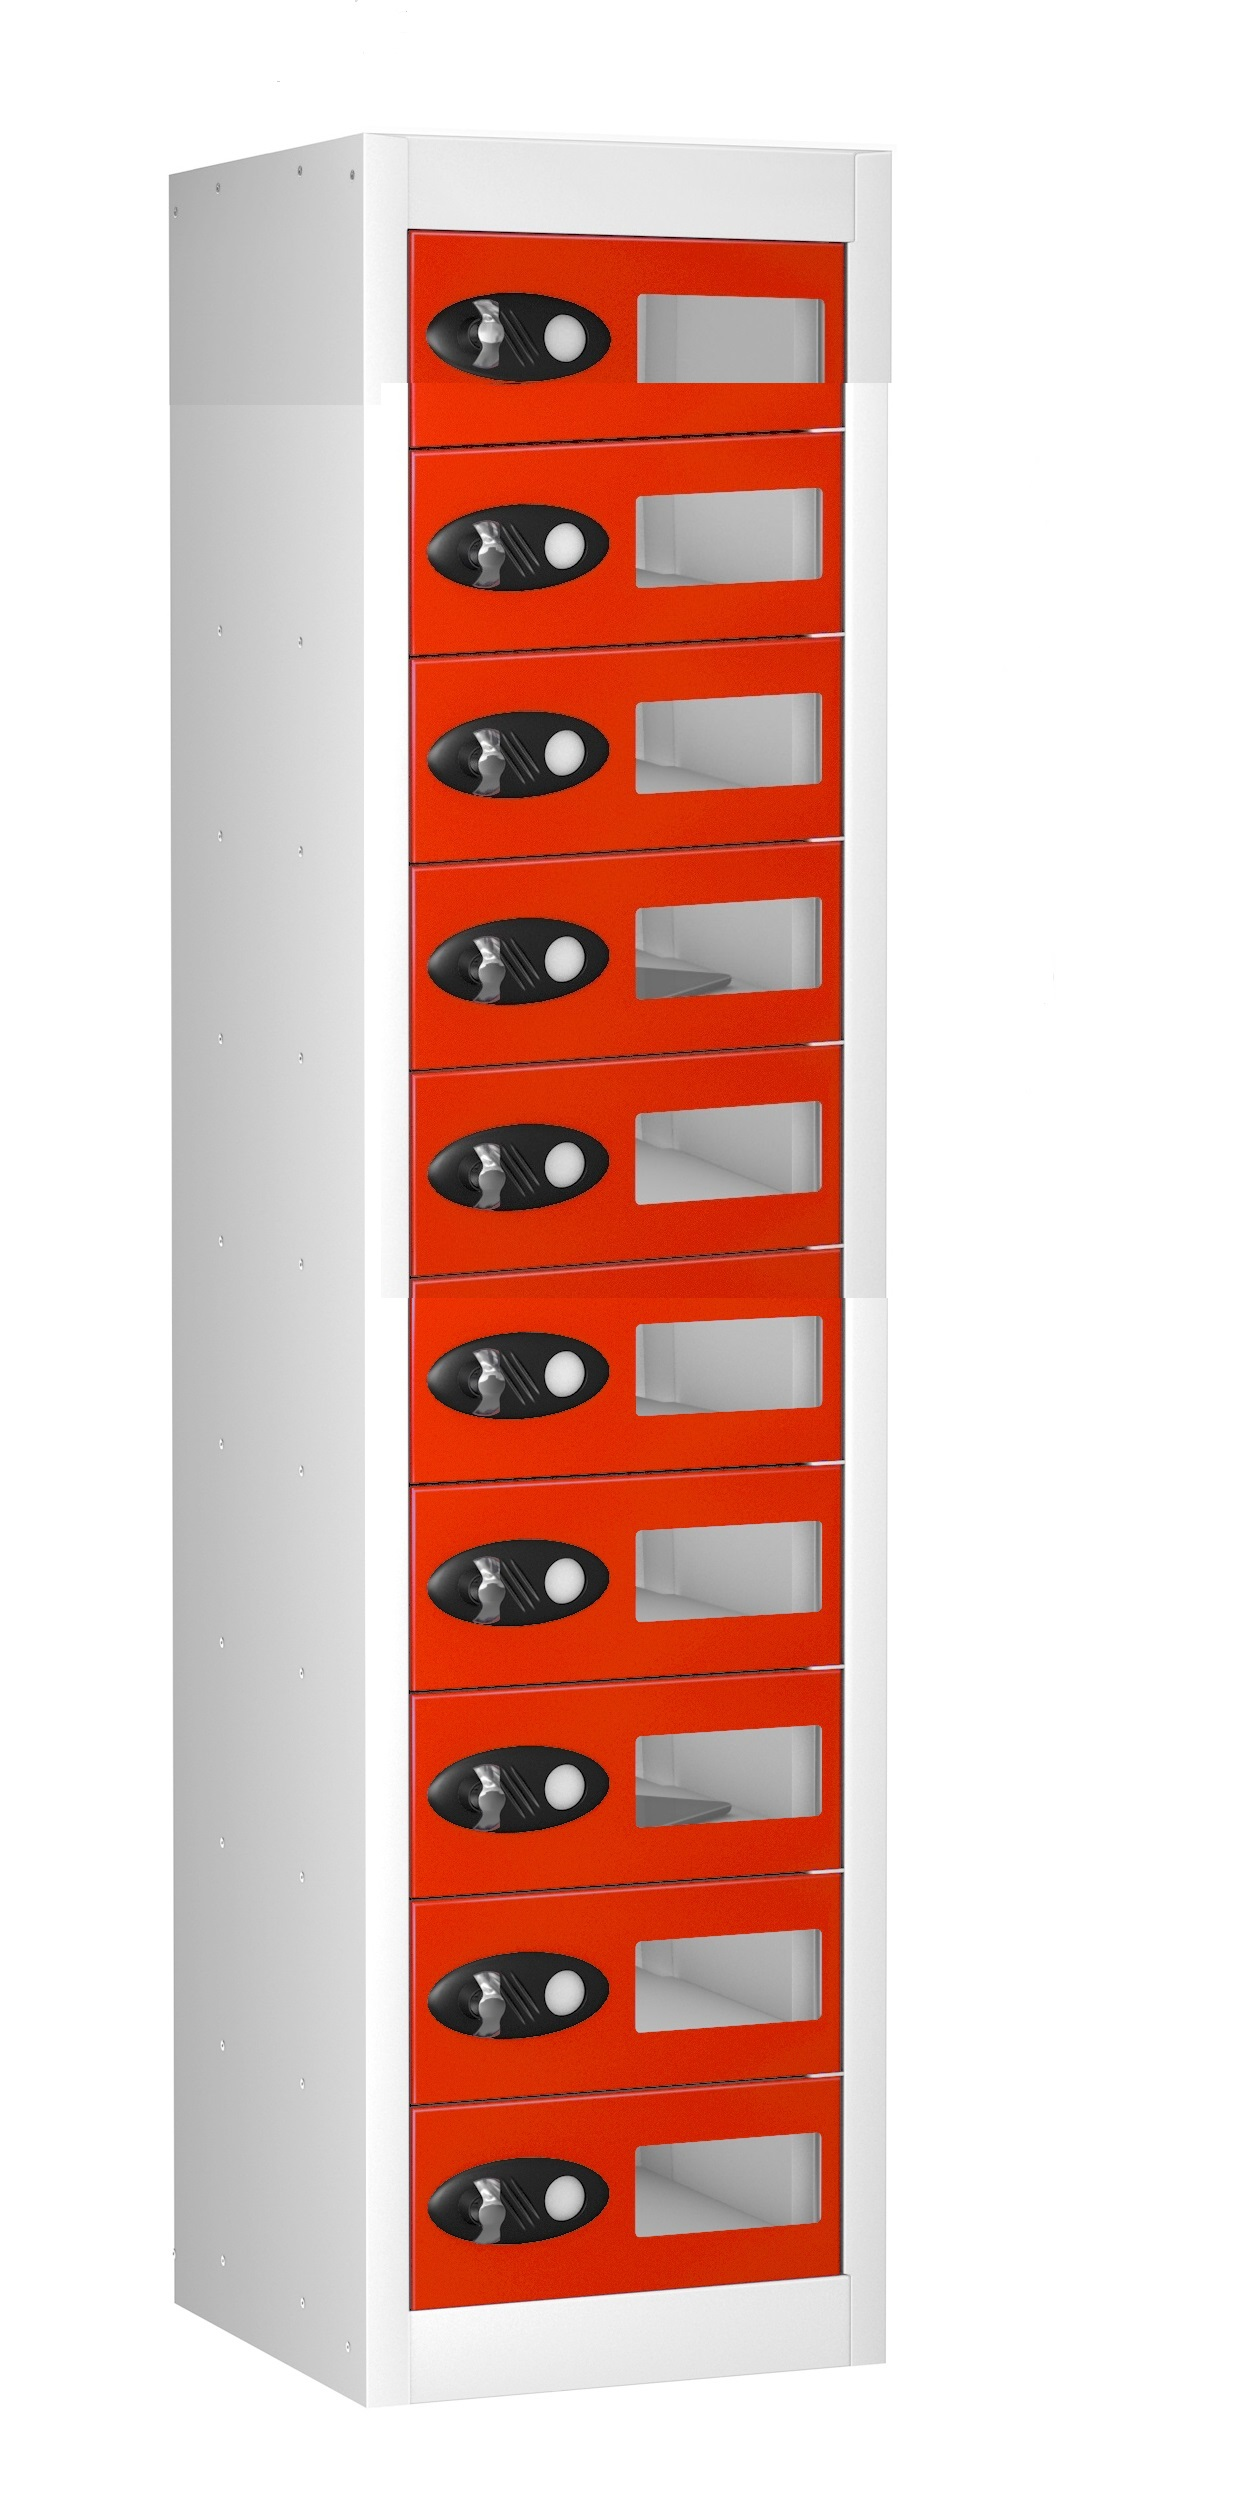 Vision Panel Mobile Phone -10 Doors Charge and Store Locker (Charging)